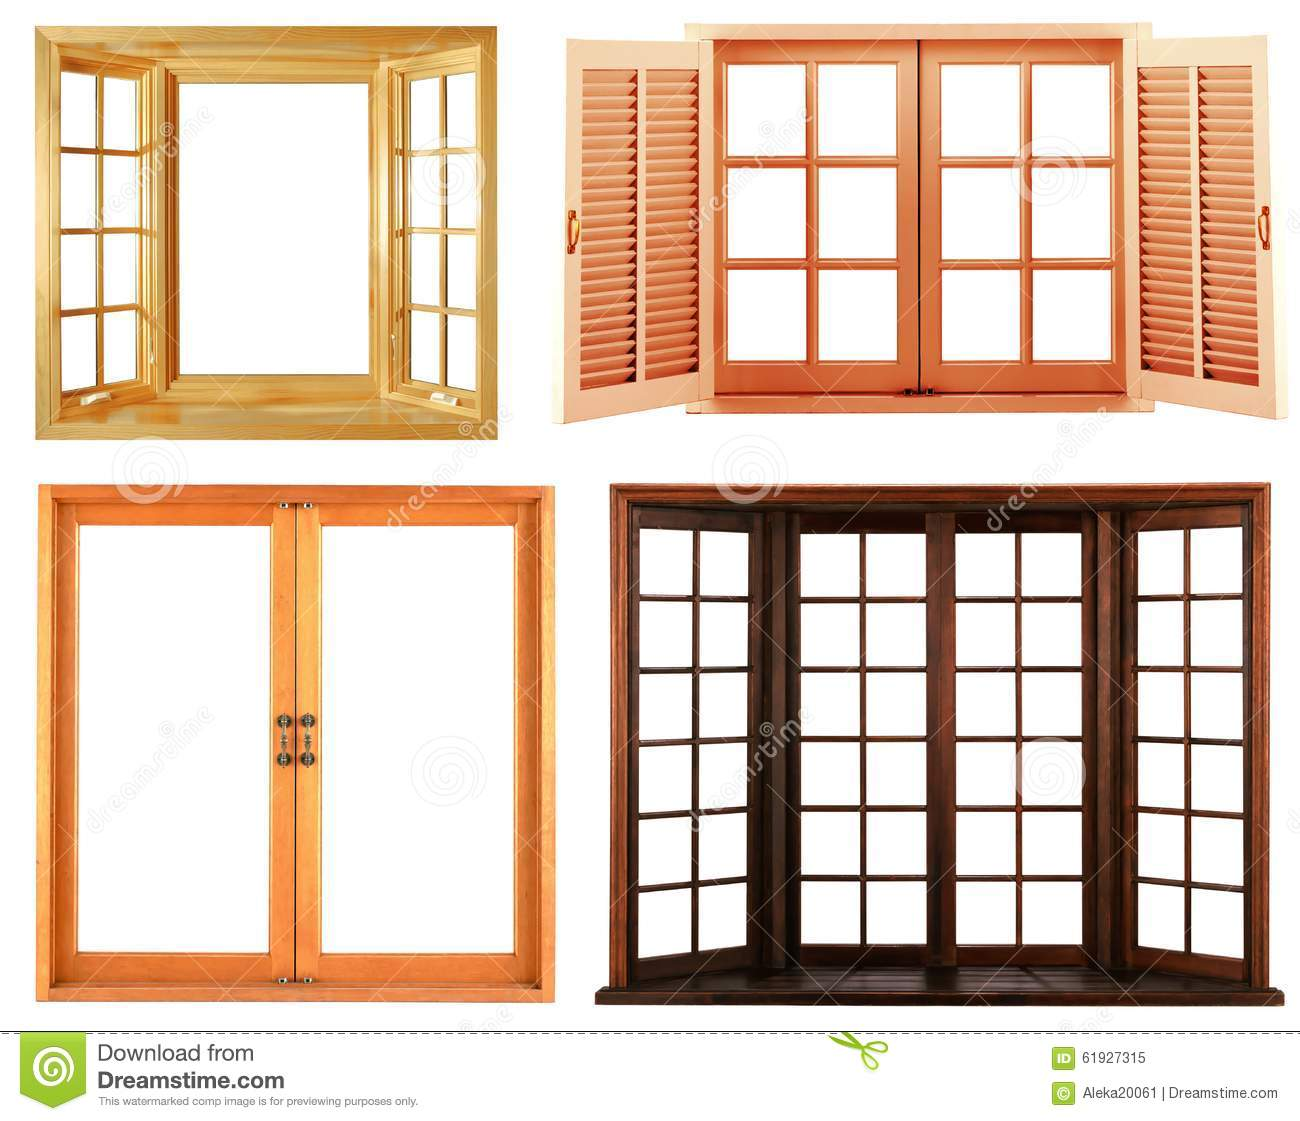 Wood Window Frames : Different types of wooden window frame isolated stock